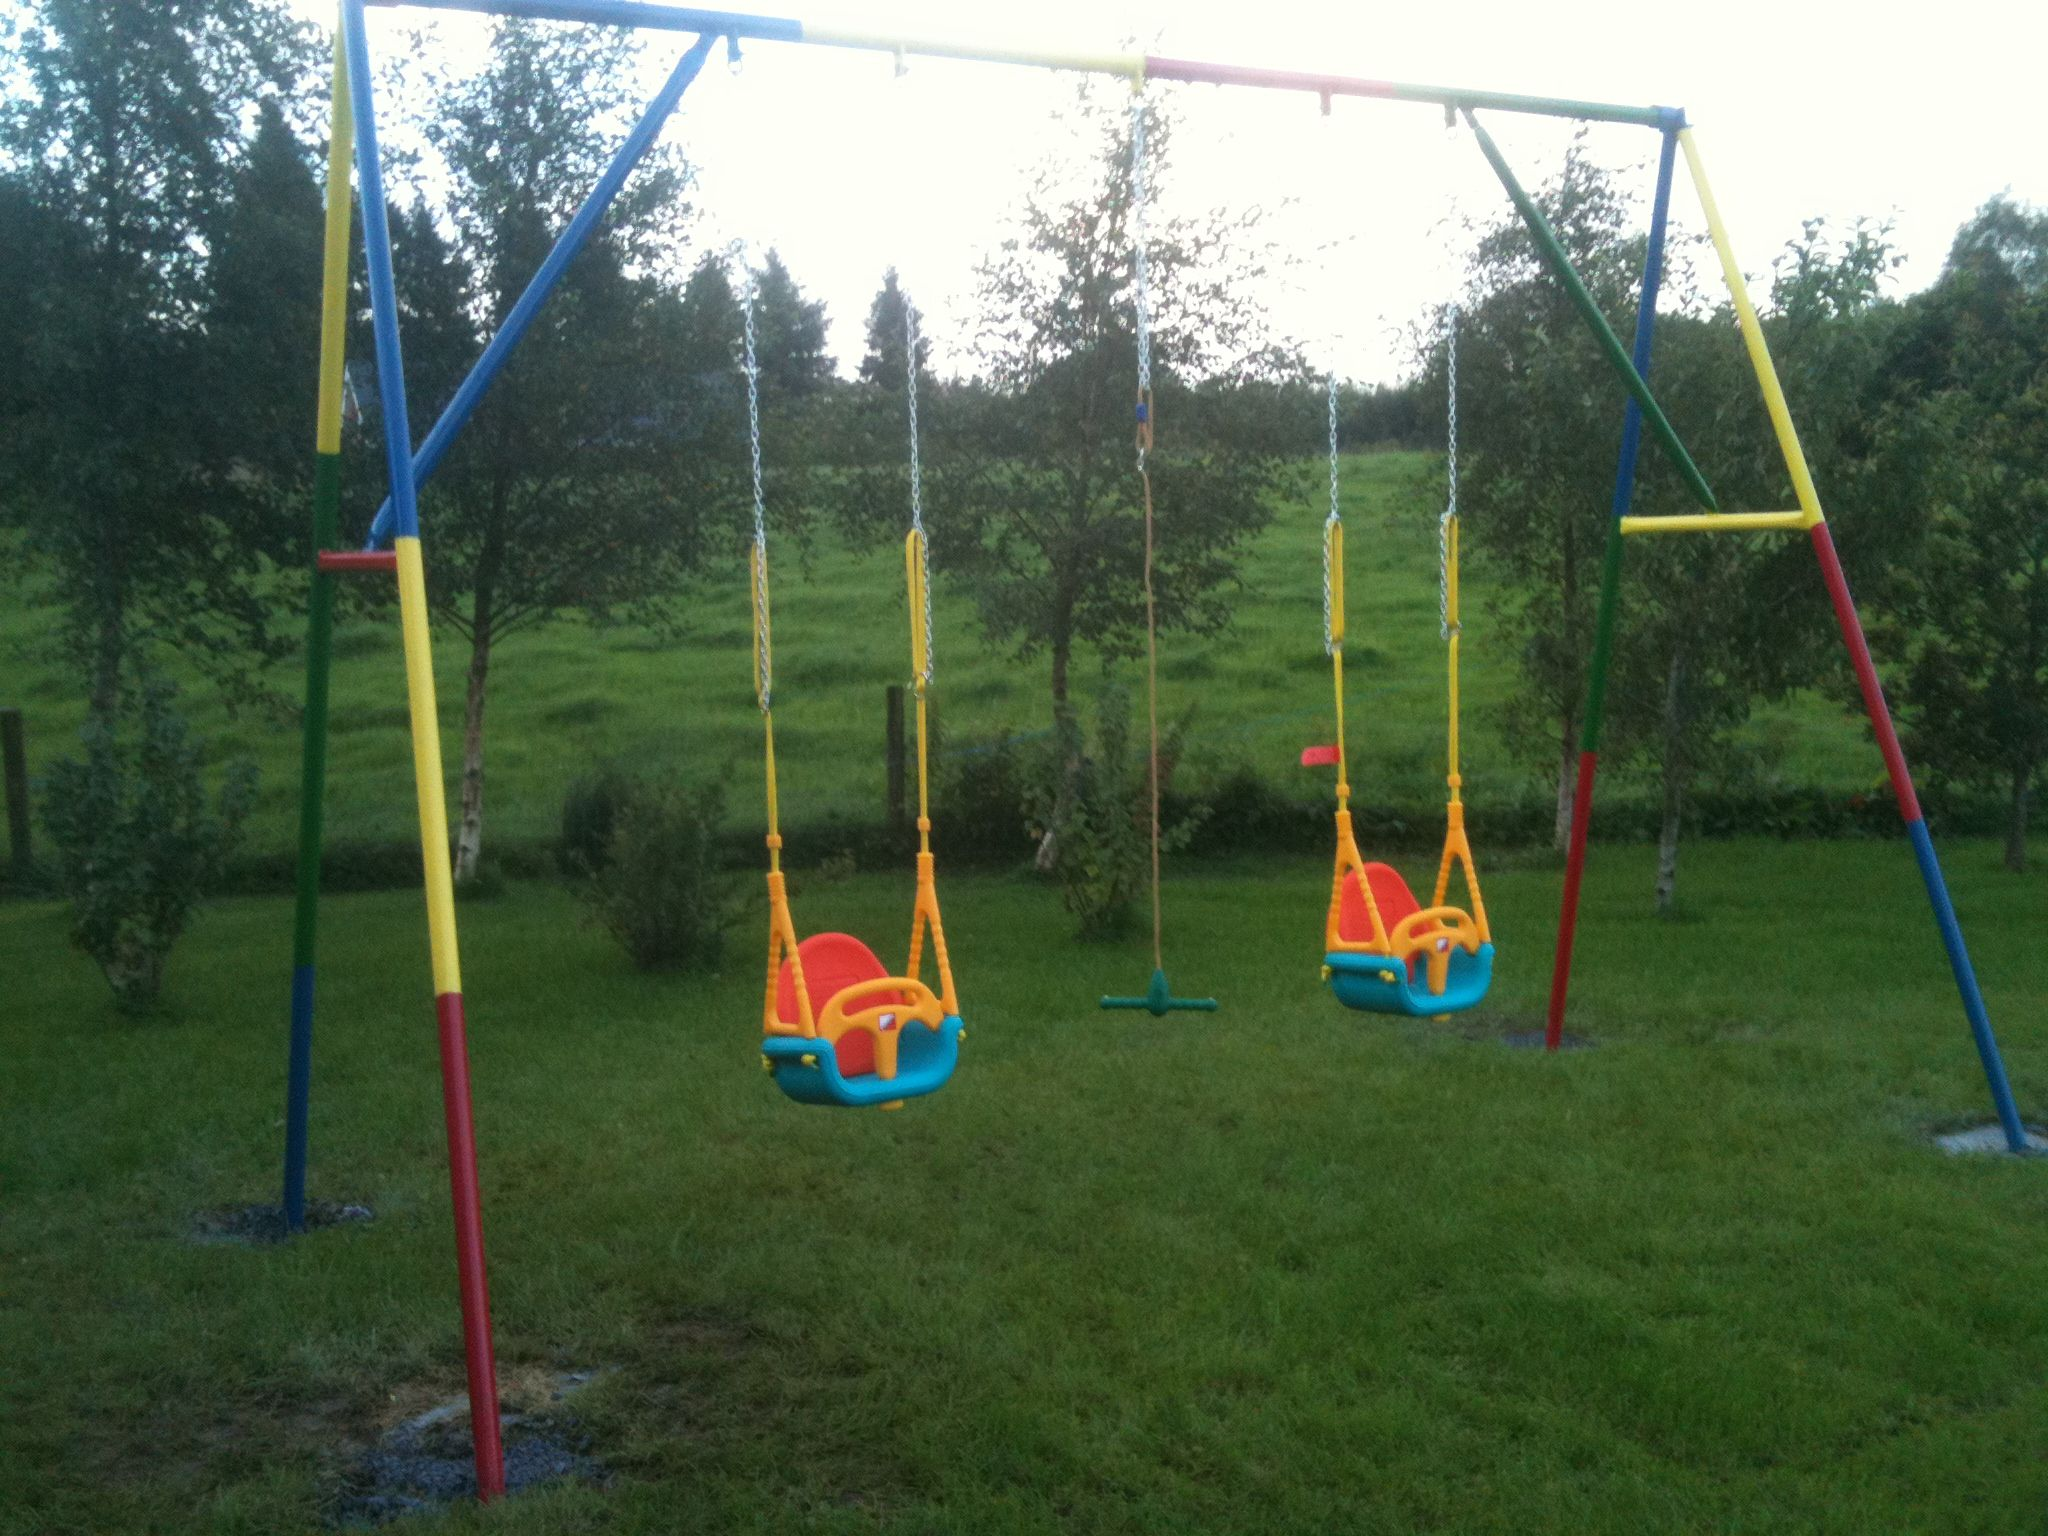 Home Made Swings For The Kids By My Talented Dad,